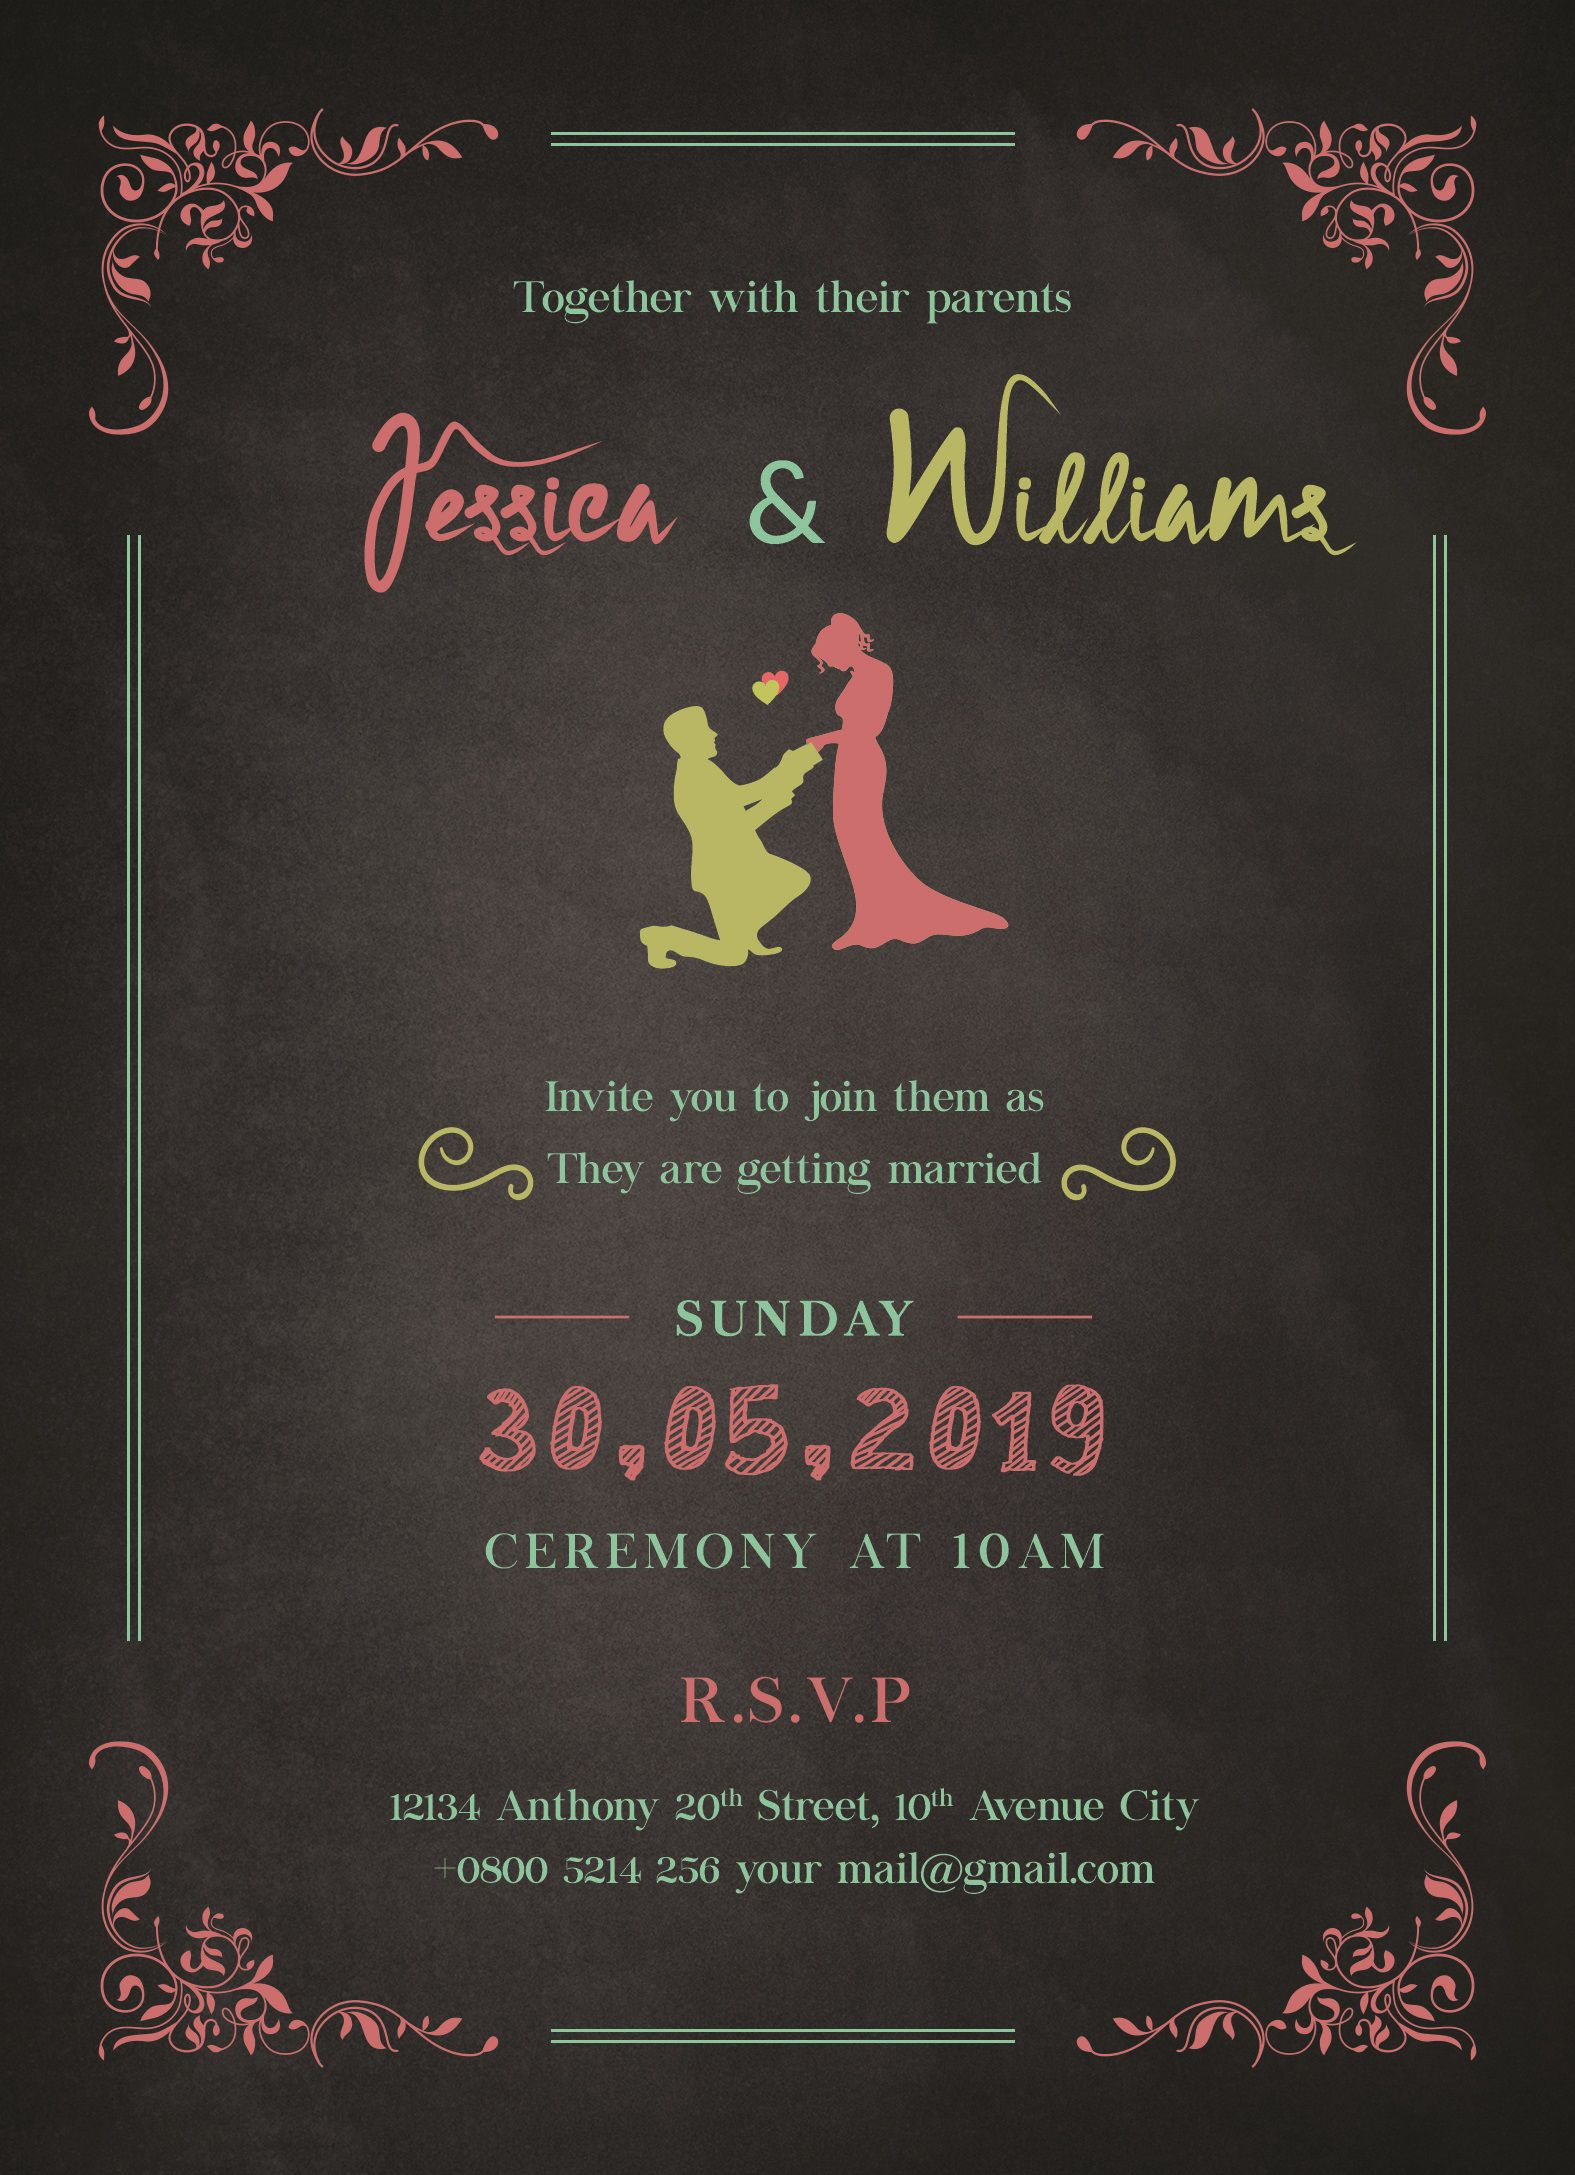 009 Imposing Free Download Invitation Card Design Software Sample  Full Version Wedding For PcFull